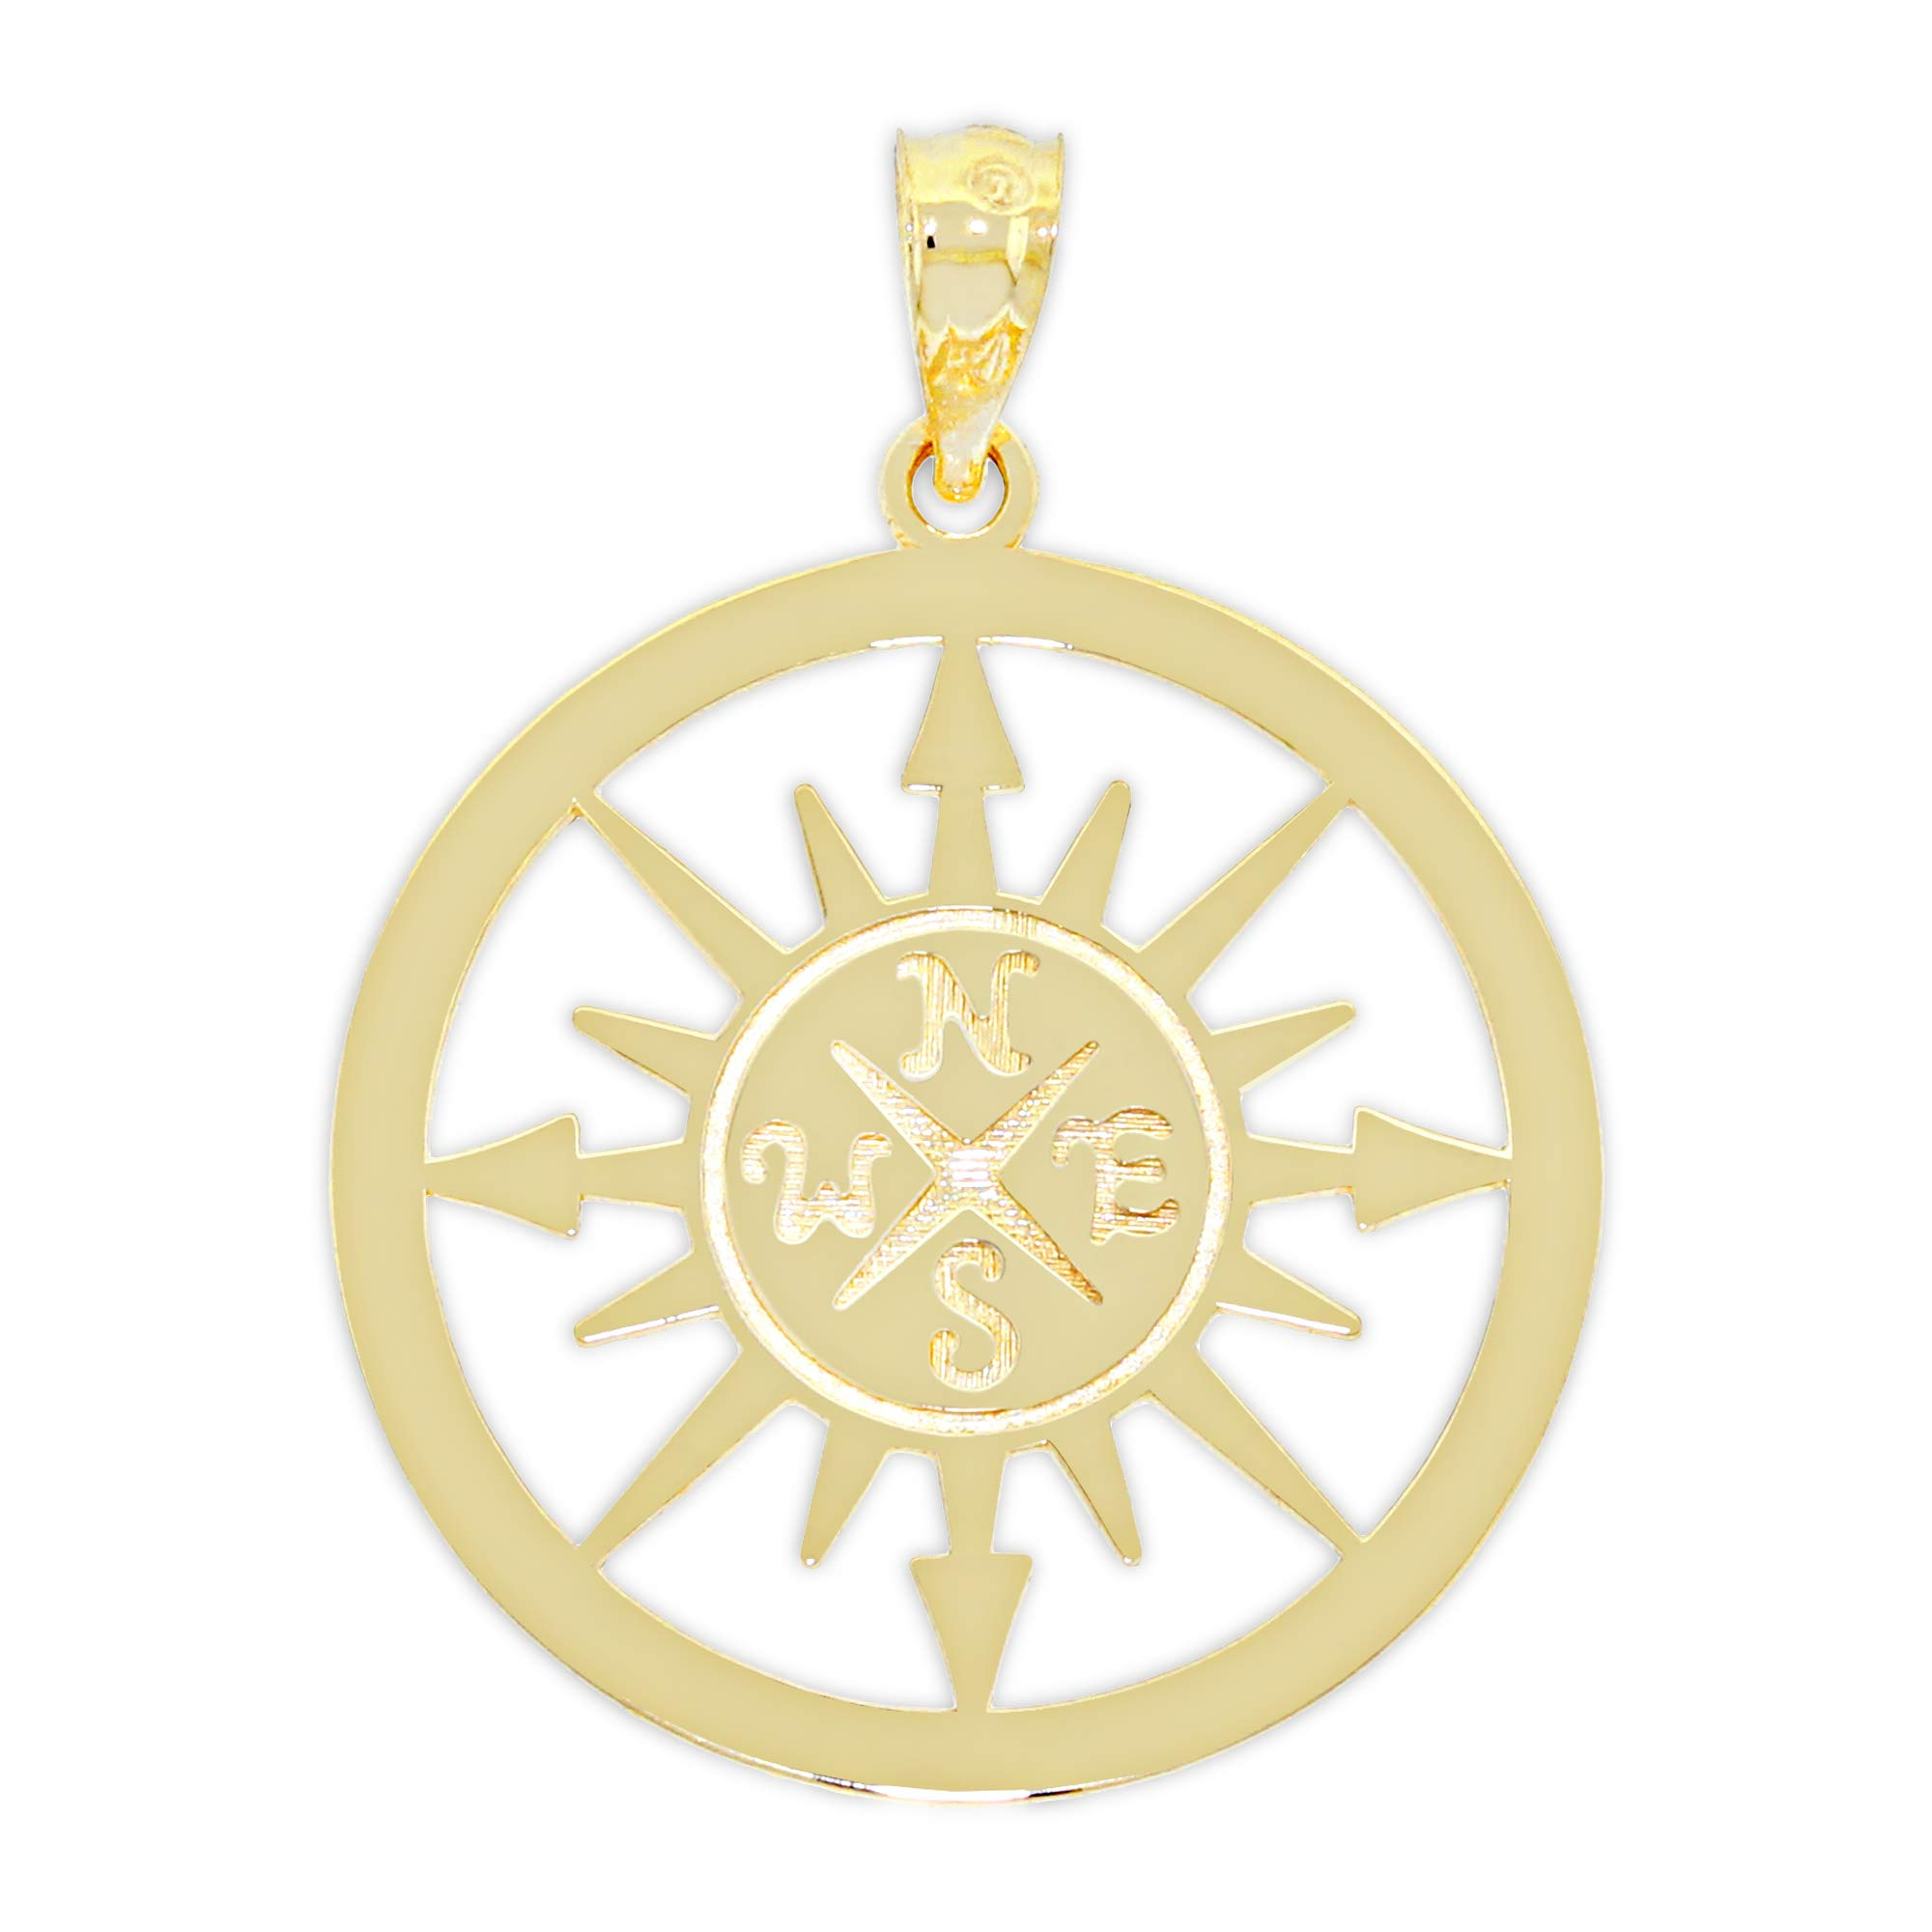 Charm America - Gold Reversible Compass Charm - 14 Karat Solid Gold - I Would be Lost Without You